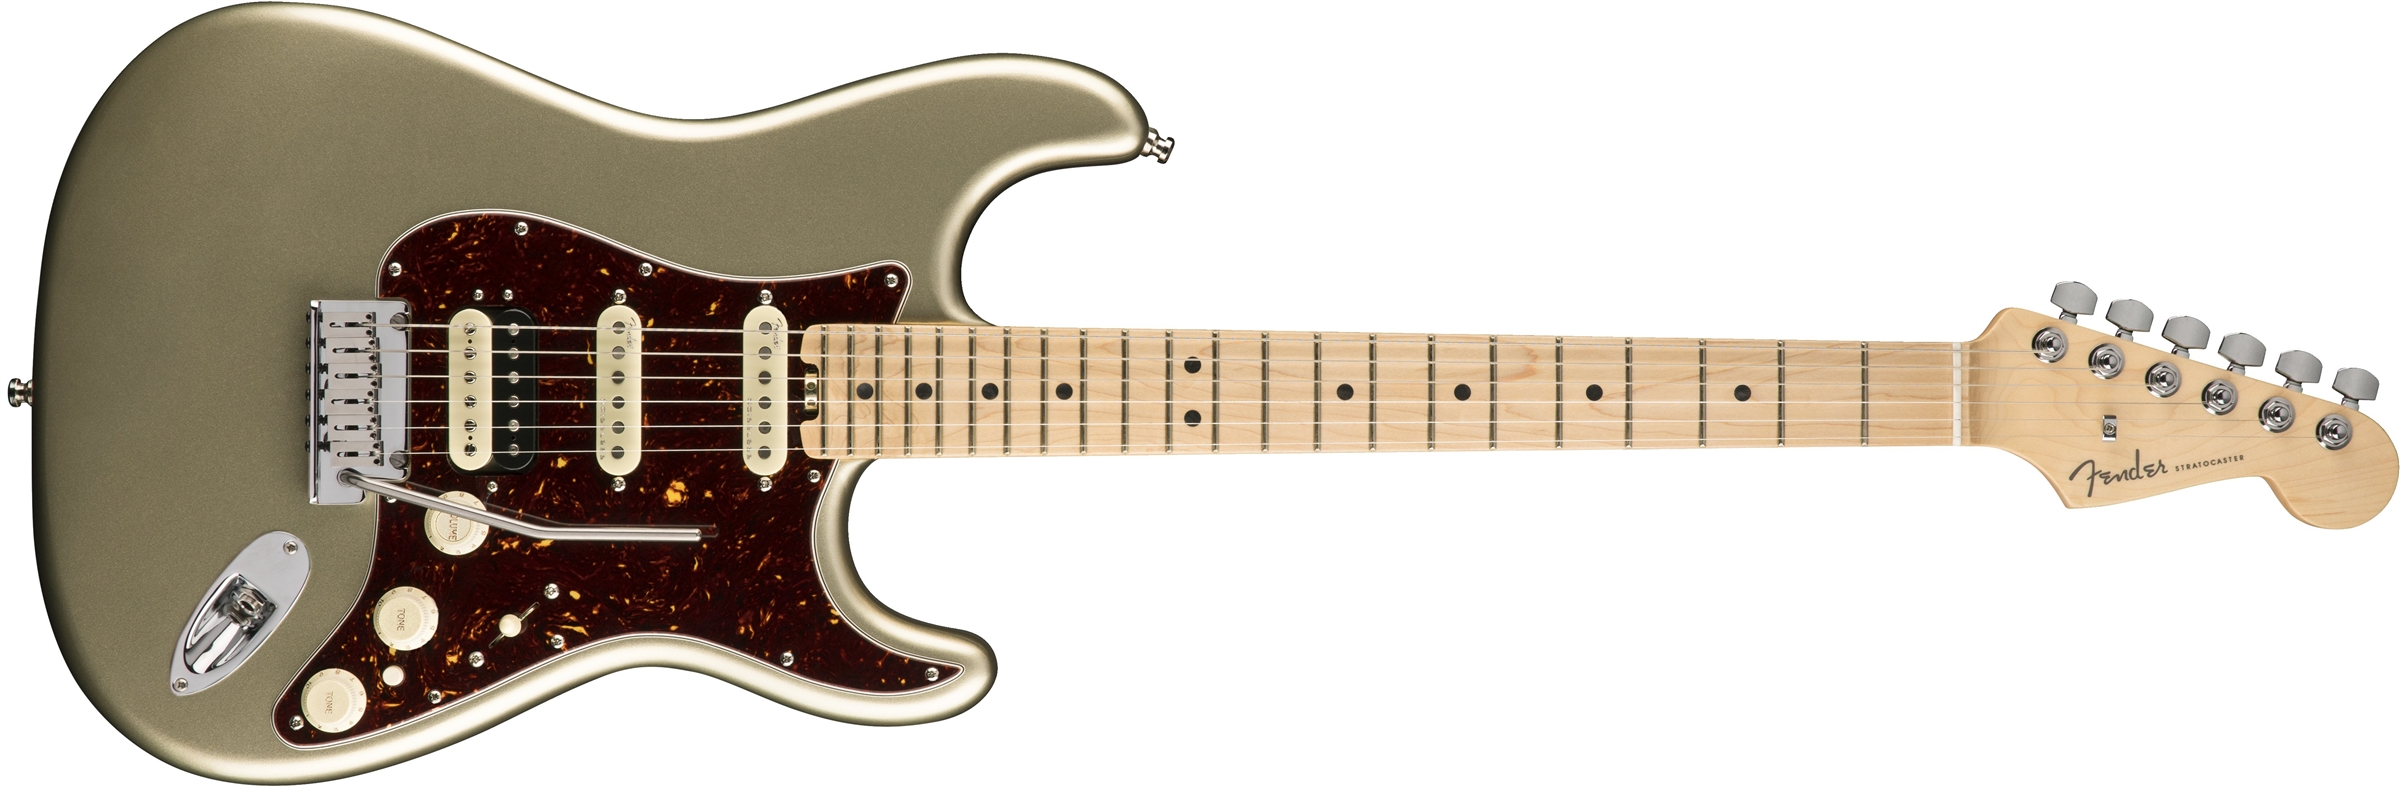 American Elite Stratocaster Hss Shawbucker Electric Guitars Strat Wiring Diagrams Pick Up Combos Tap To Expand